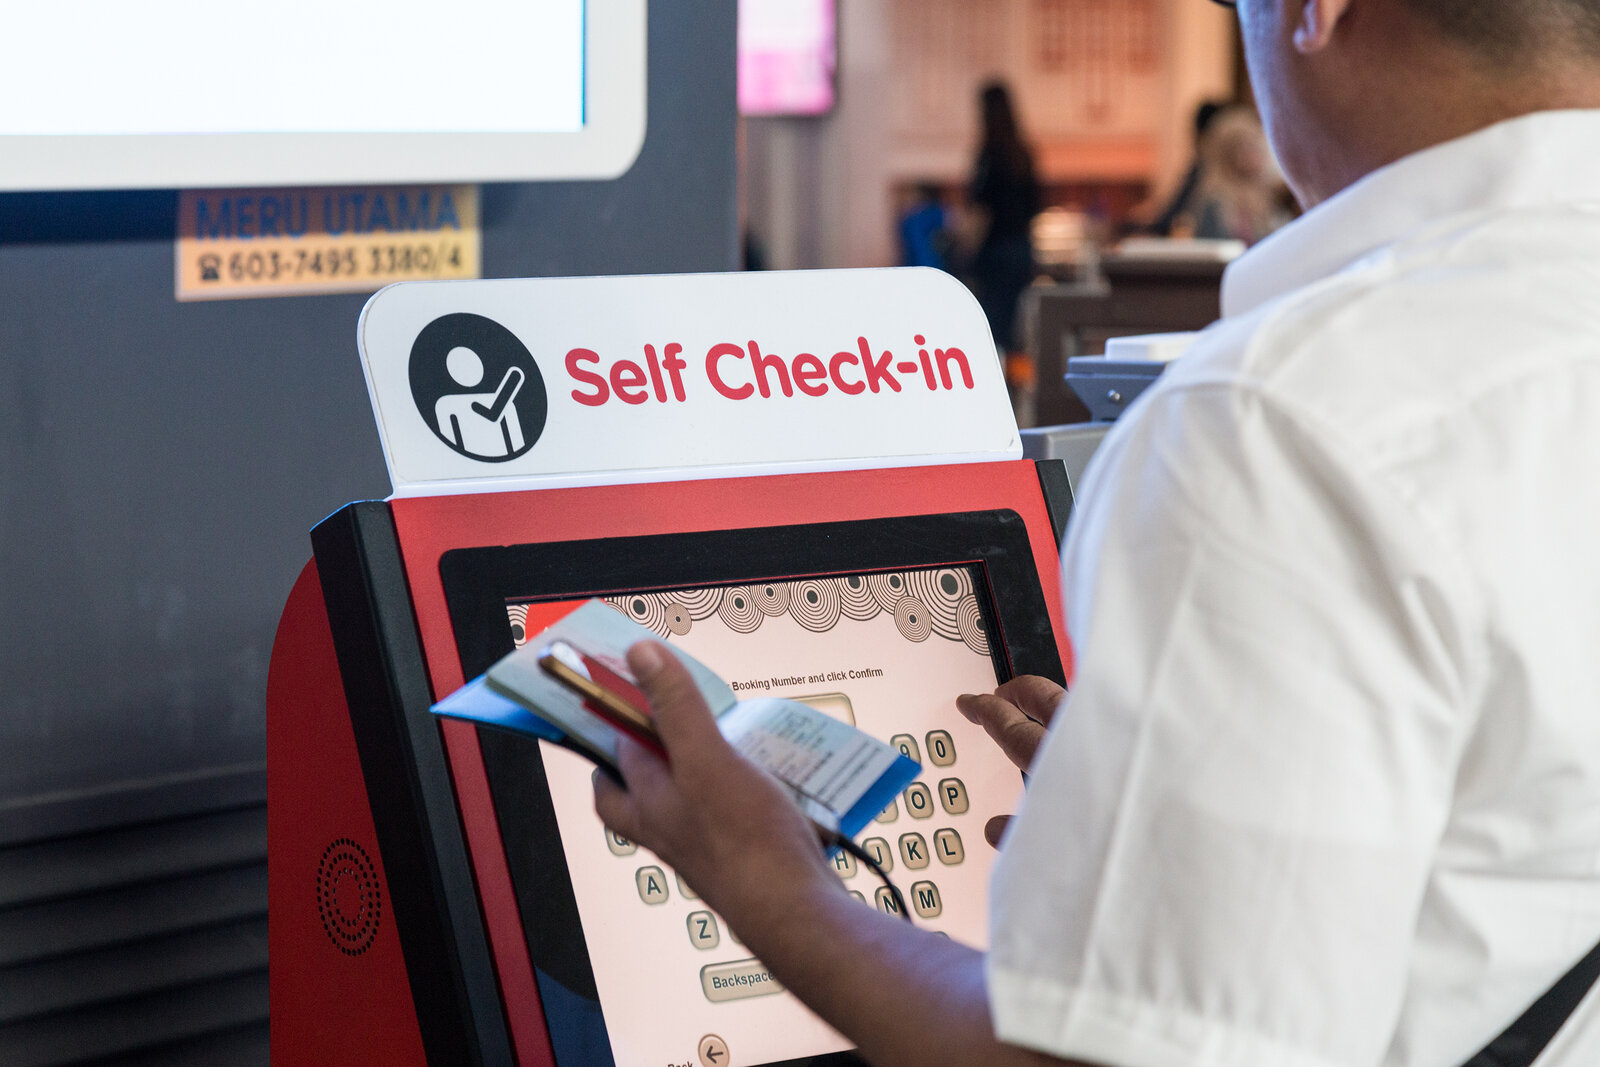 A passenger using a self check-in kiosk at an airport.